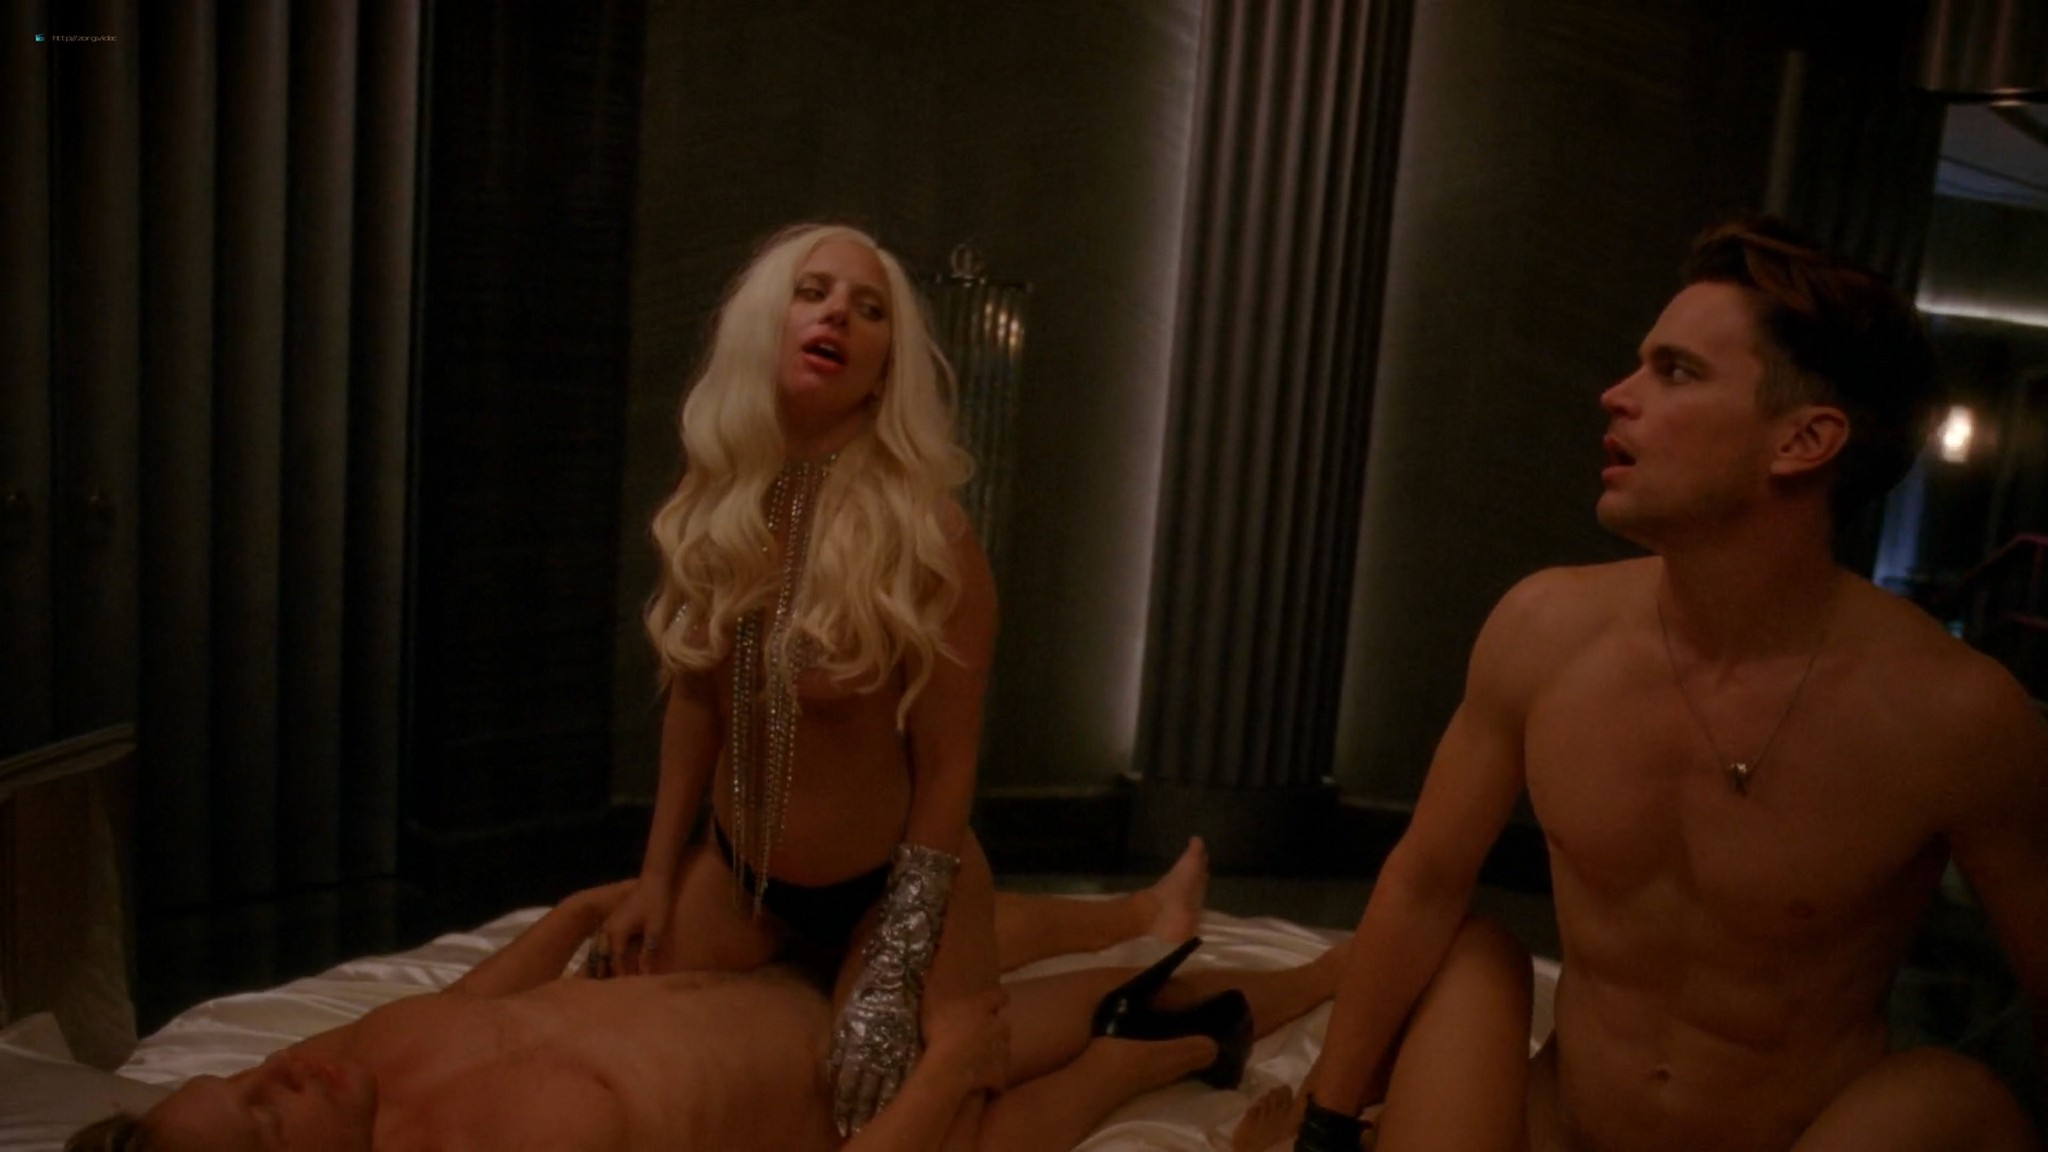 Lady Gaga butt in thong Chasty Ballesteros hot – American Horror Story s05e01 (2015) HD 1080p (2)